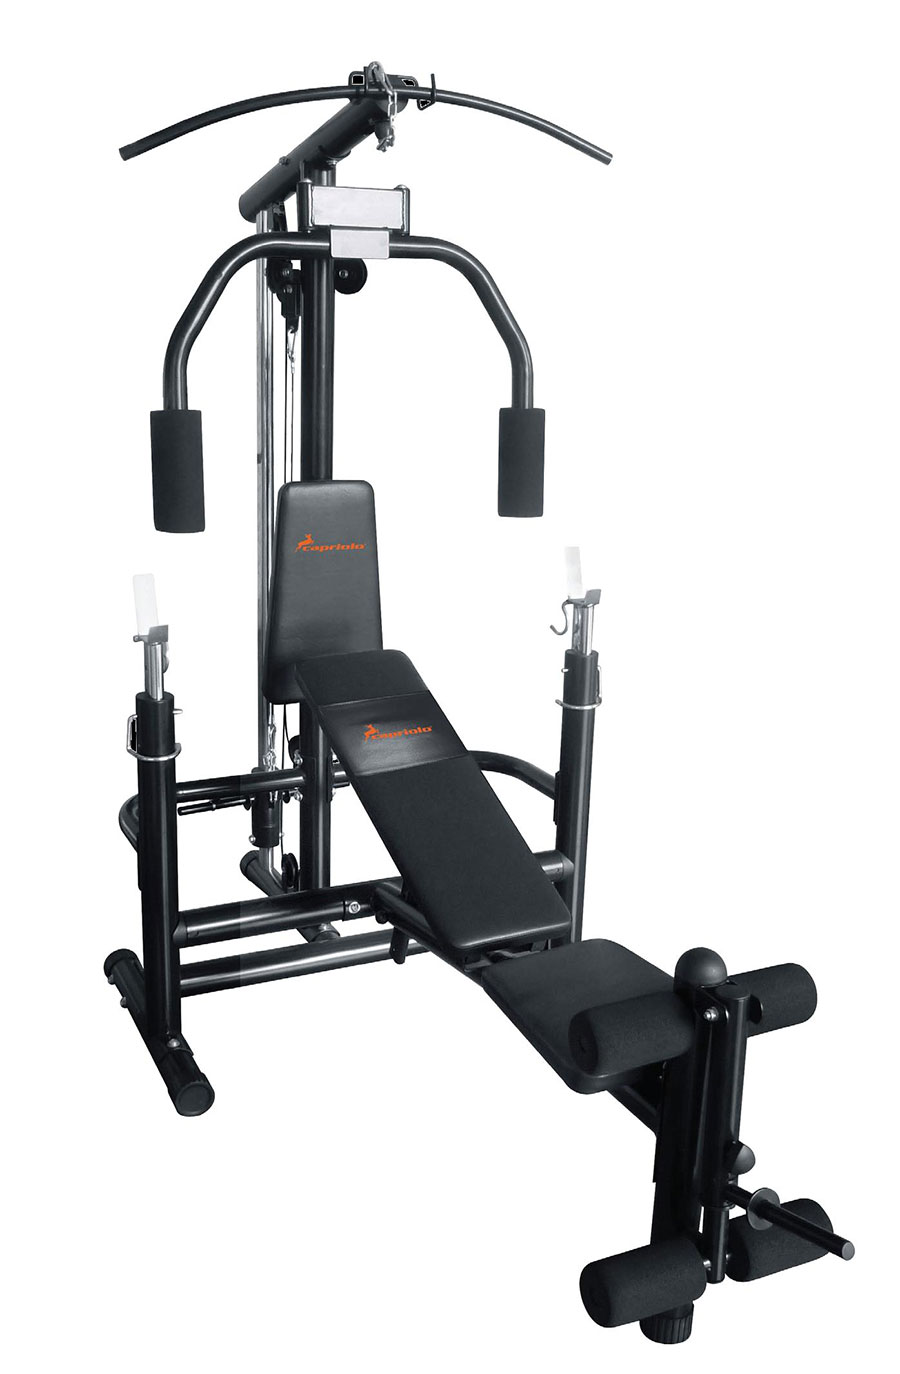 Capriolo homegym+bench 291283